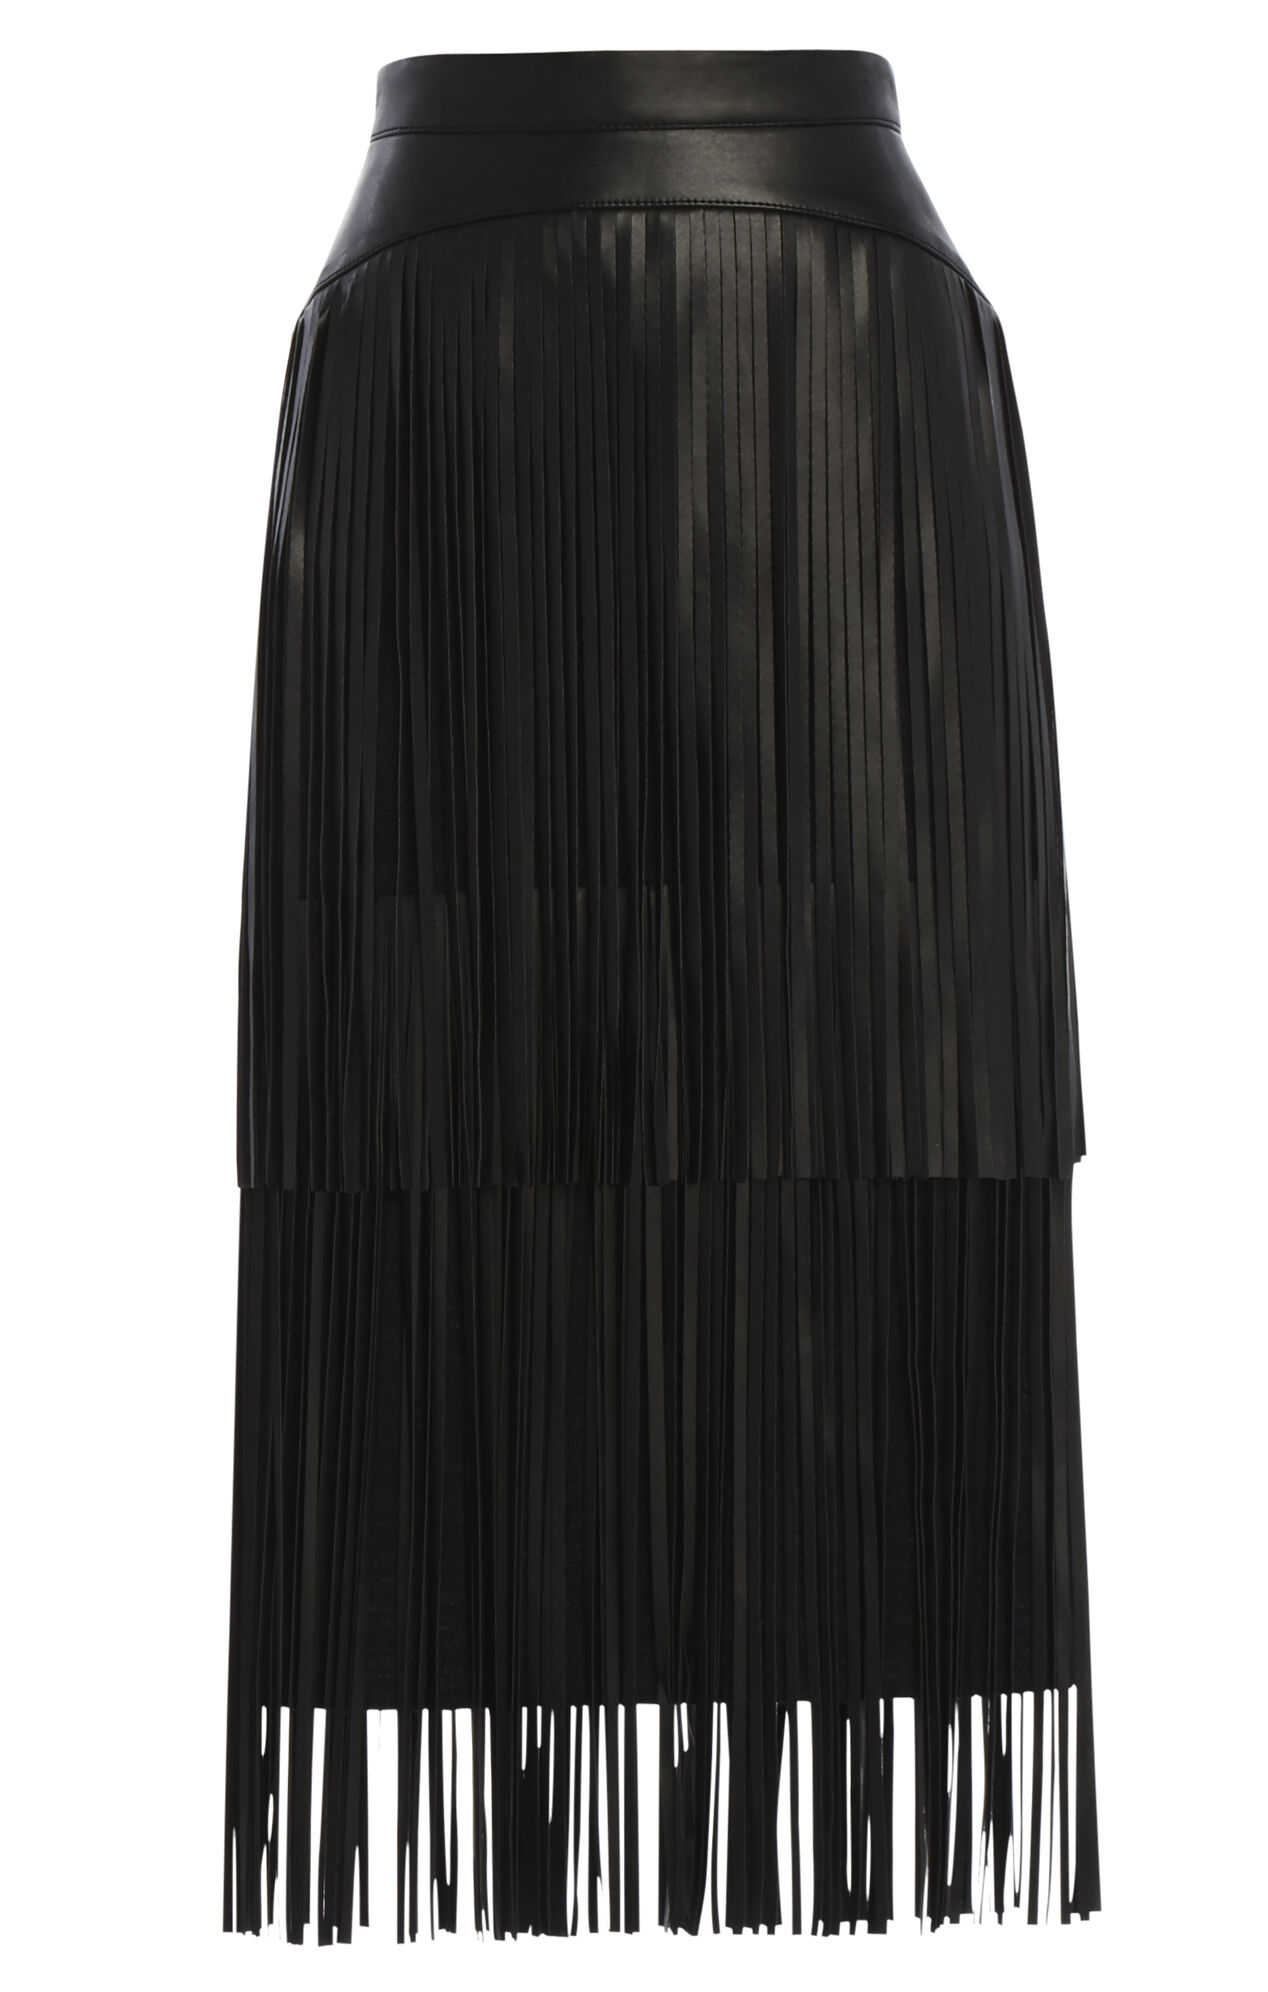 Rashell Fringe-Detail Pencil Skirt